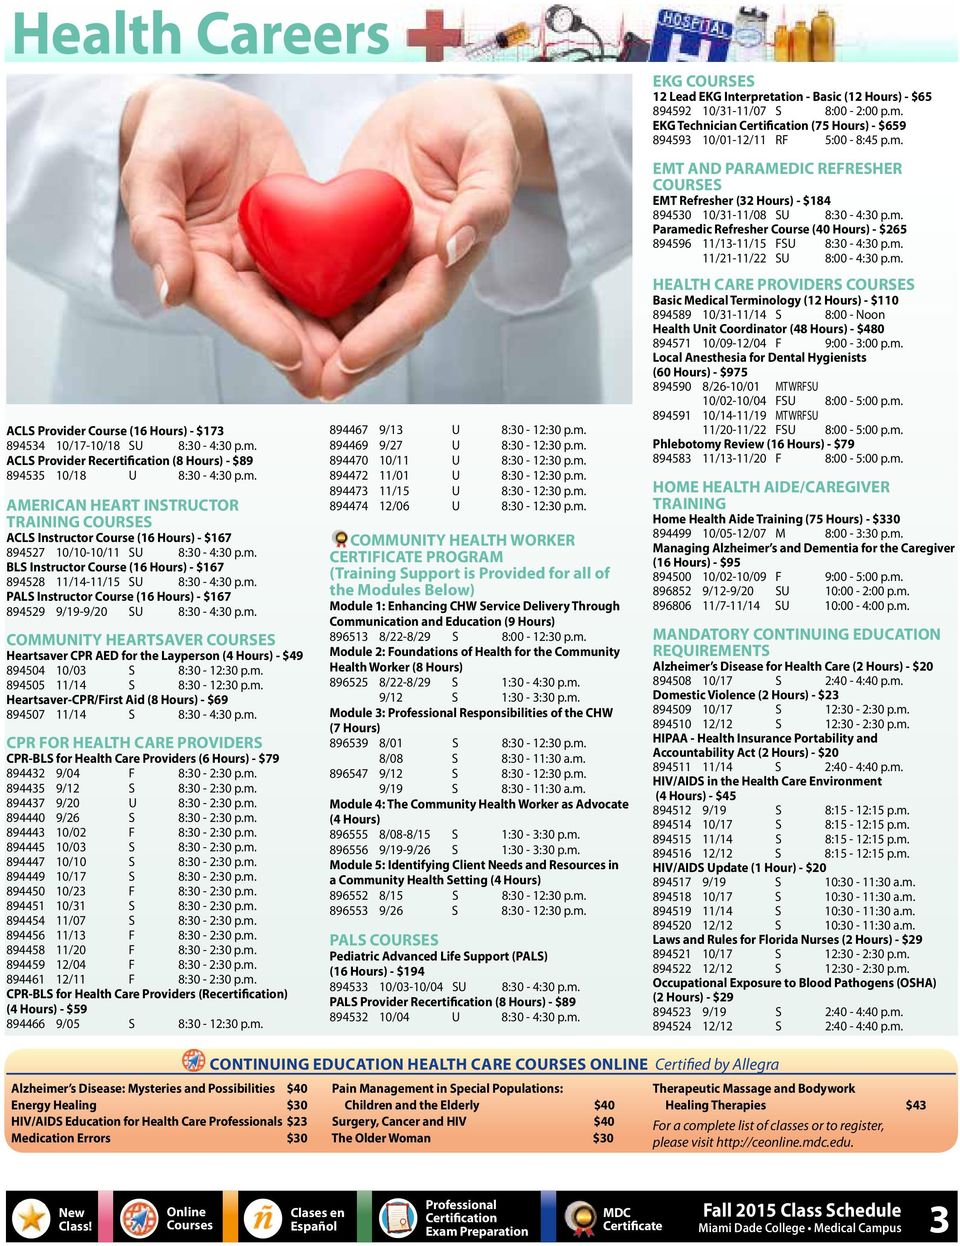 m. PALS Instructor Course (16 Hours) - $167 894529 9/19-9/20 SU 8:30-4:30 p.m. COMMUNITY HEARTSAVER COURSES Heartsaver CPR AED for the Layperson (4 Hours) - $49 894504 10/03 S 8:30-12:30 p.m. 894505 11/14 S 8:30-12:30 p.